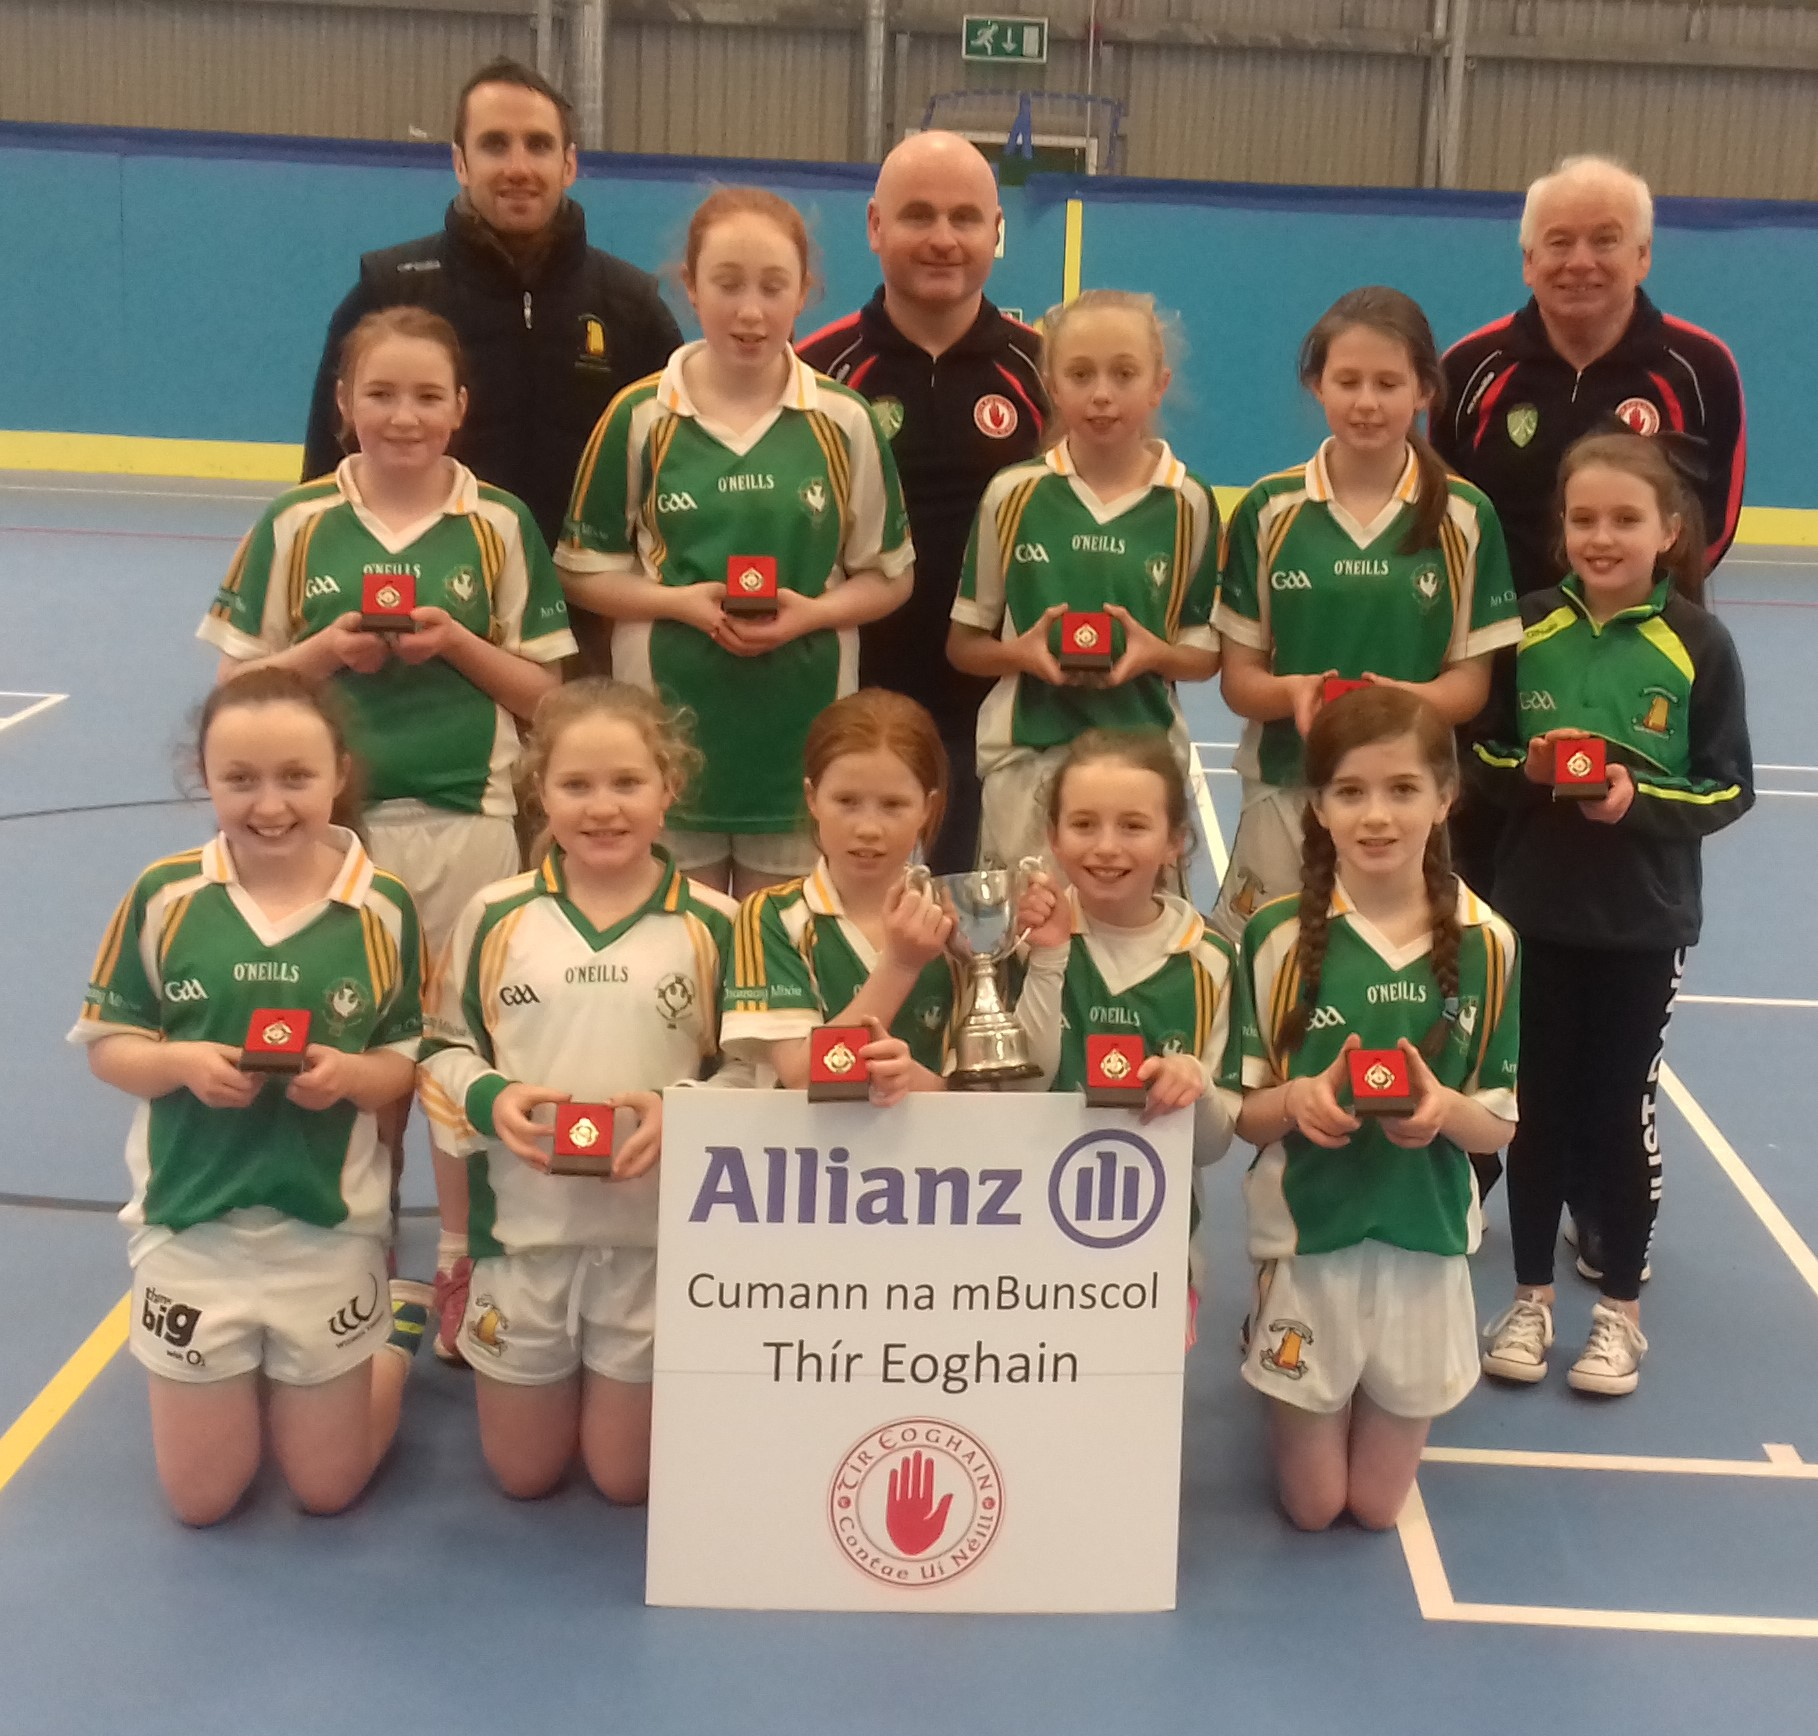 ALLIANZ CUMANN Na mBUNSCOL – GIRLS' INDOOR FOOTBALL: Tyrone Final 2017